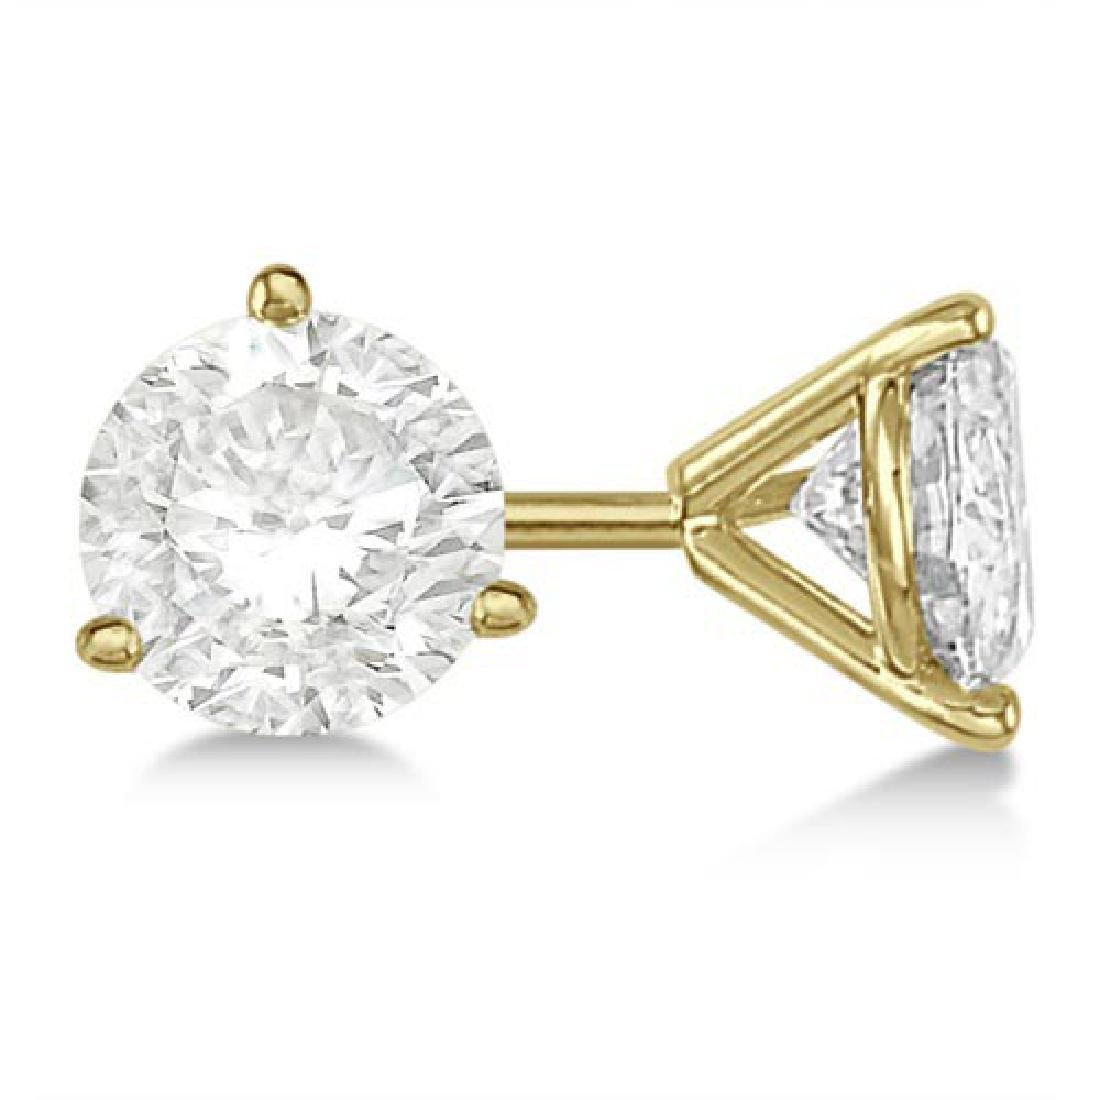 3.00ct. 3-Prong Martini Diamond Stud Earrings 18kt Yell